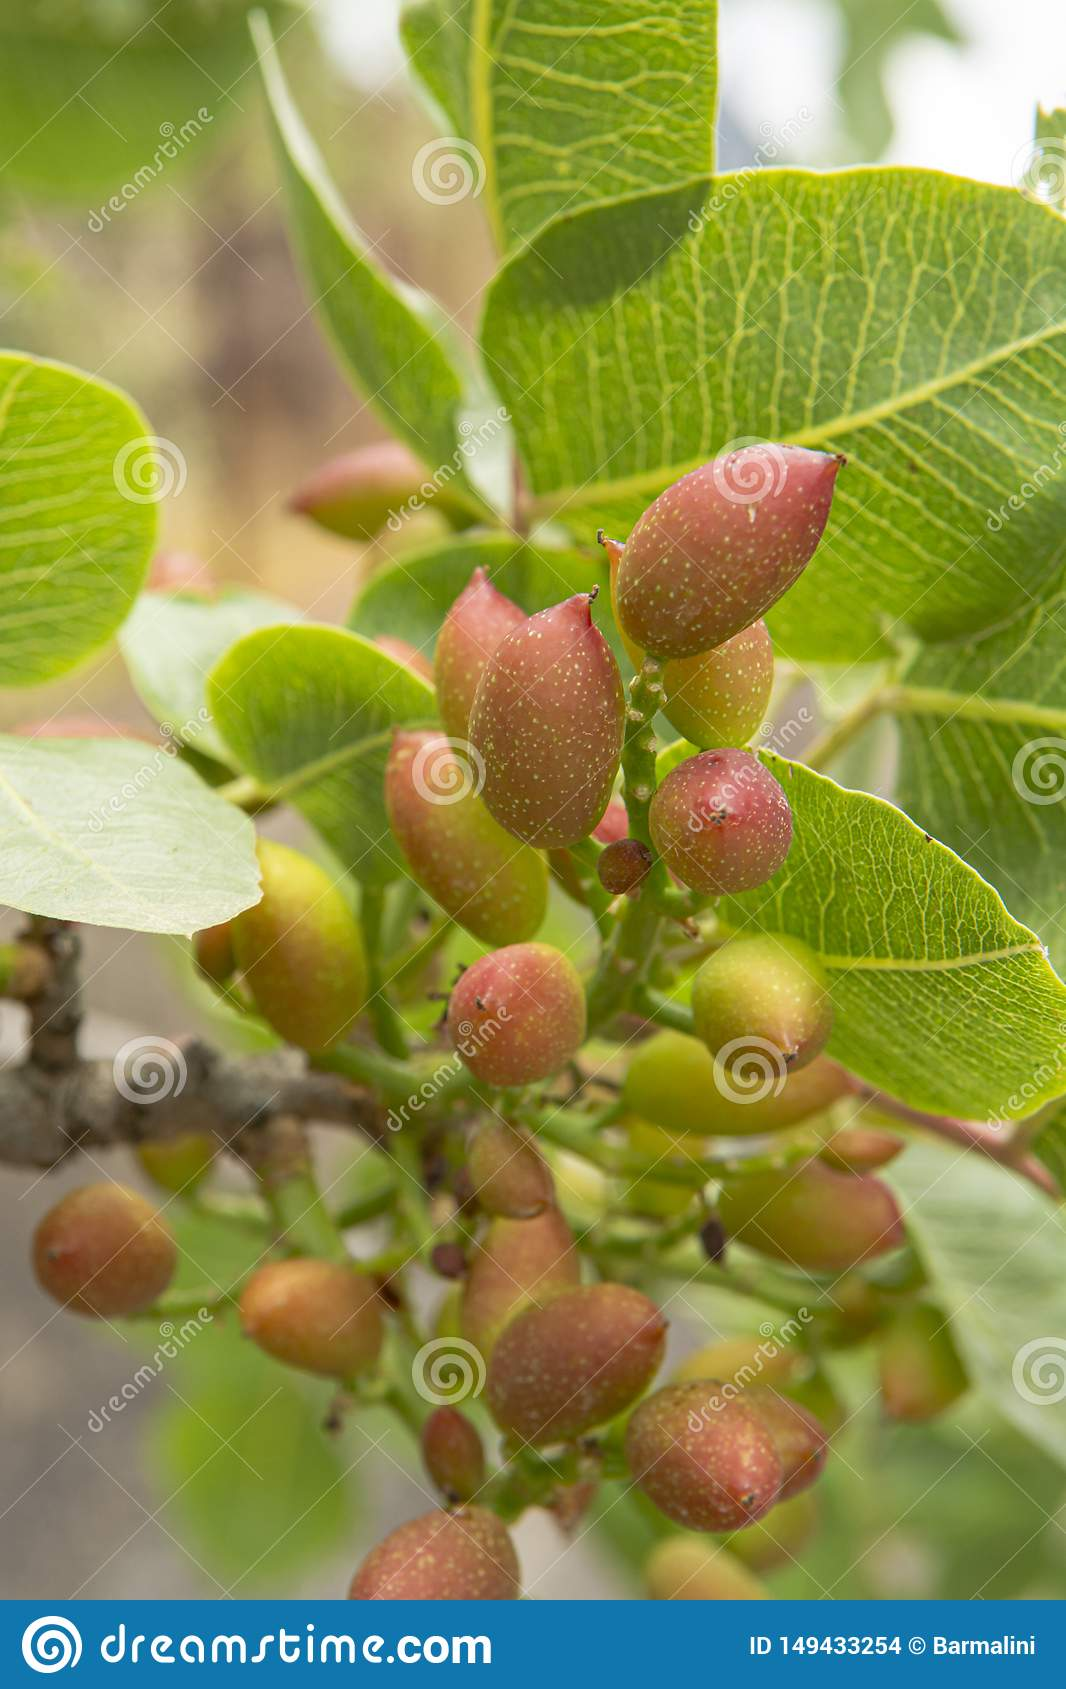 Cultivation of important ingredient of Italian cuisine, plantation of pistachio trees with ripening pistachio nuts near Bronte,